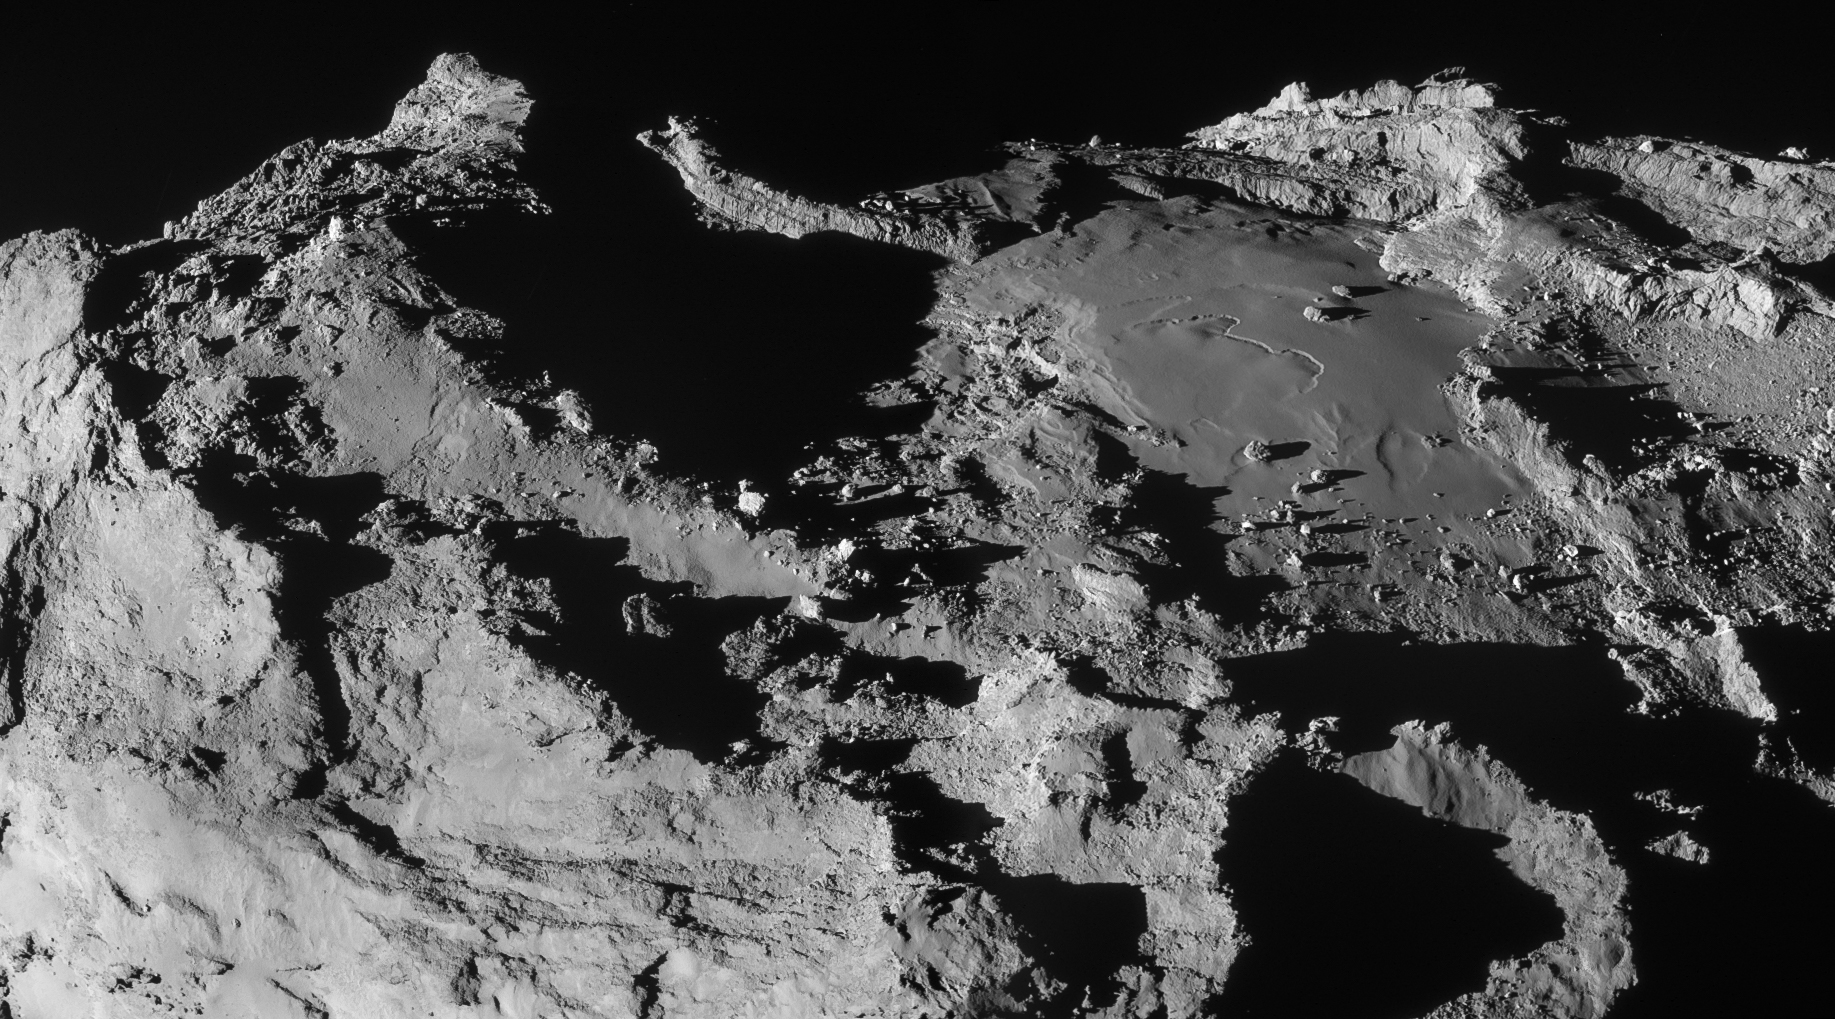 This stunning scene was created from two NAVCAM frames acquired at 19.9 km from the comet centre on 28 March. The scale is about 1.7 m/pixel and the image measures 3.1 x 1.7 km. The image has been adjusted for intensity and contrast, and the vignetting has been fixed.